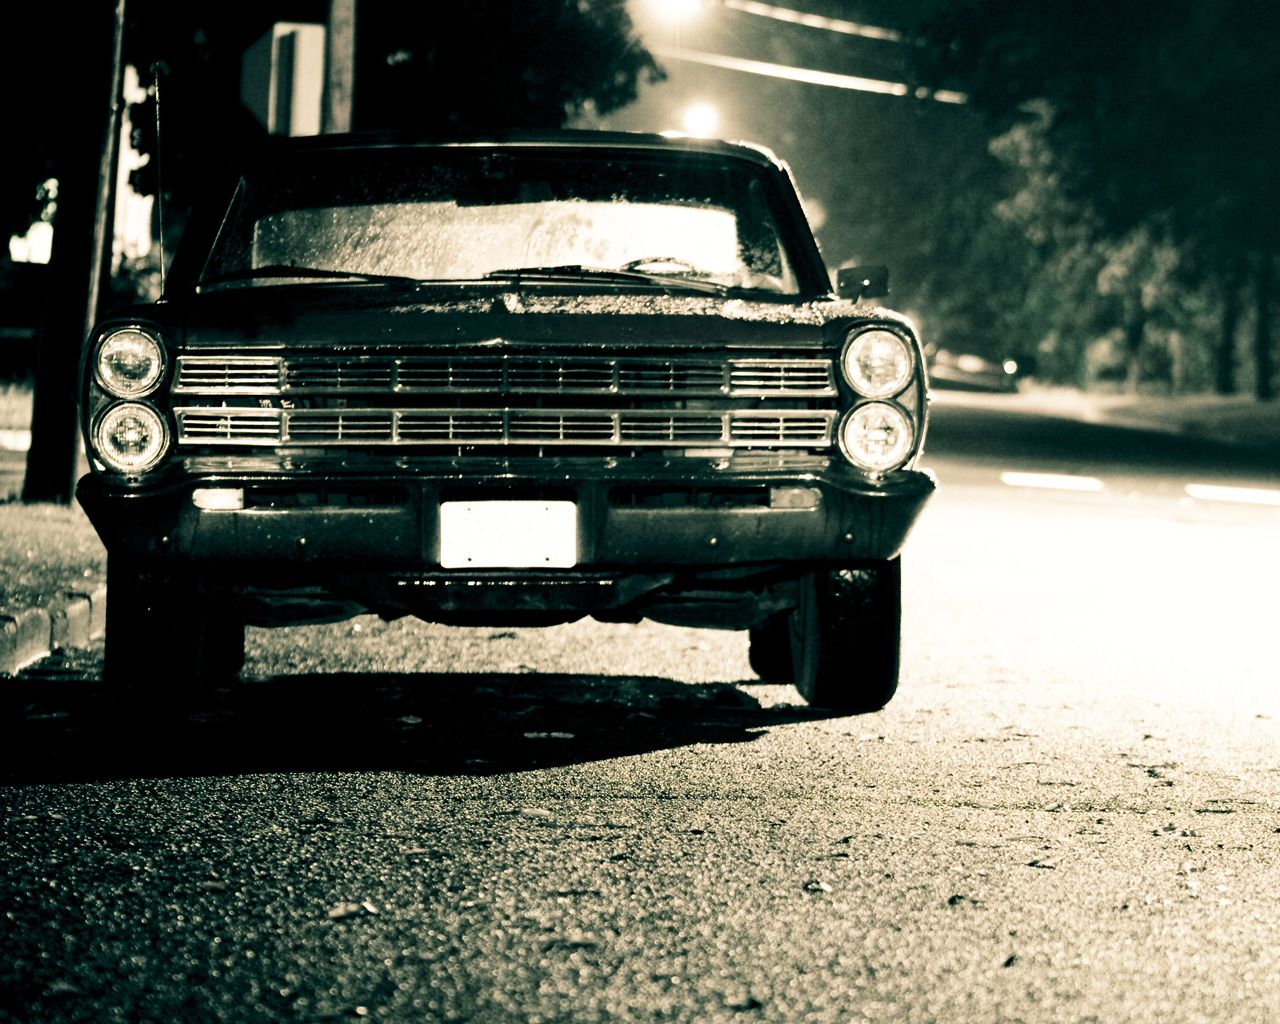 Ford Galaxie Old Car HD Wallpapers